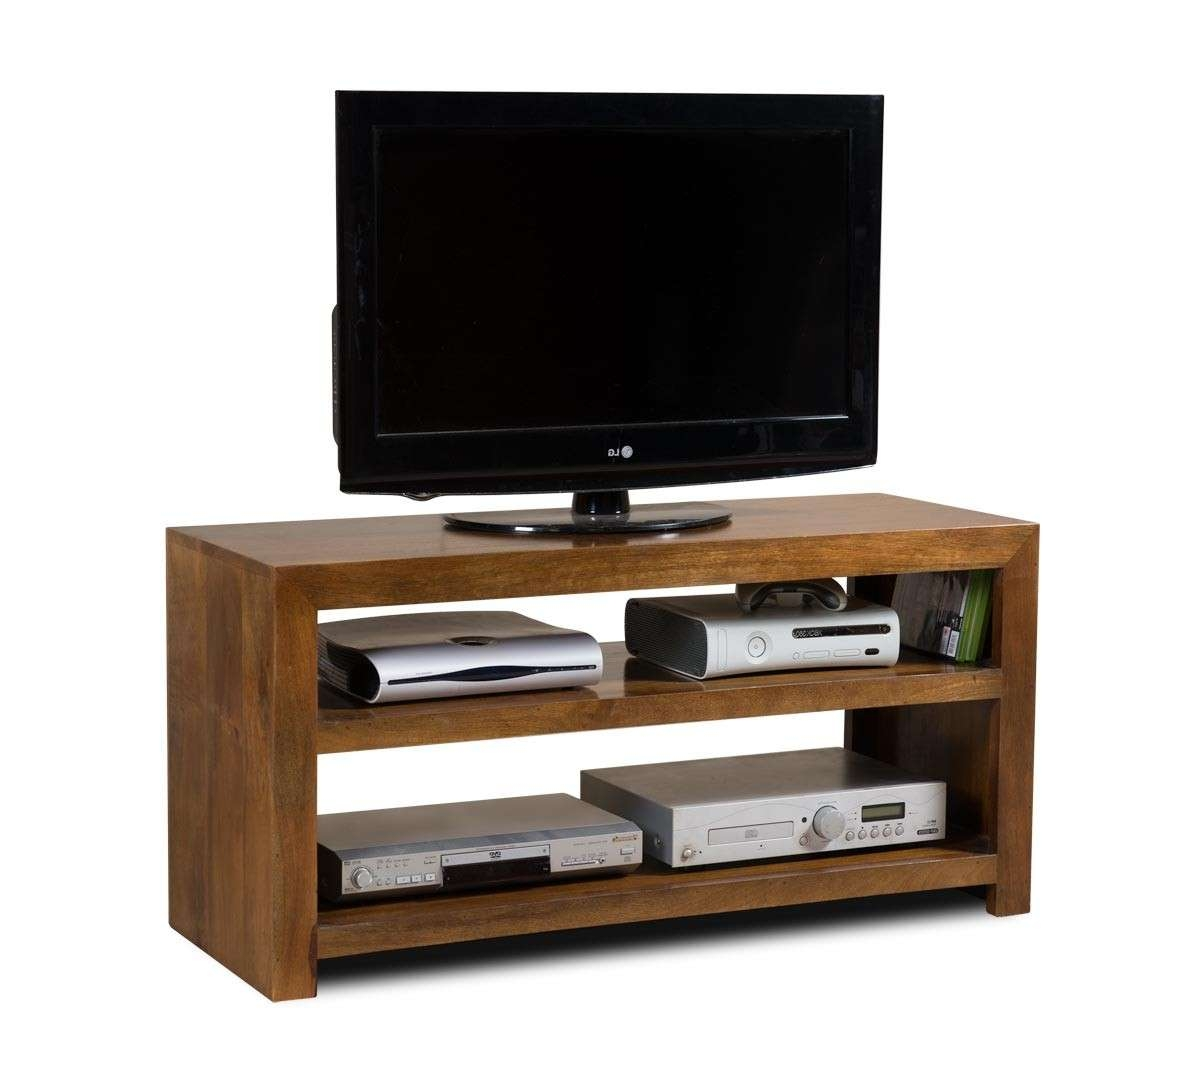 Solid Mango Wood Tv Cabinet With Drawers | Casa Bella Indian Furniture Pertaining To Mango Wood Tv Cabinets (View 14 of 20)